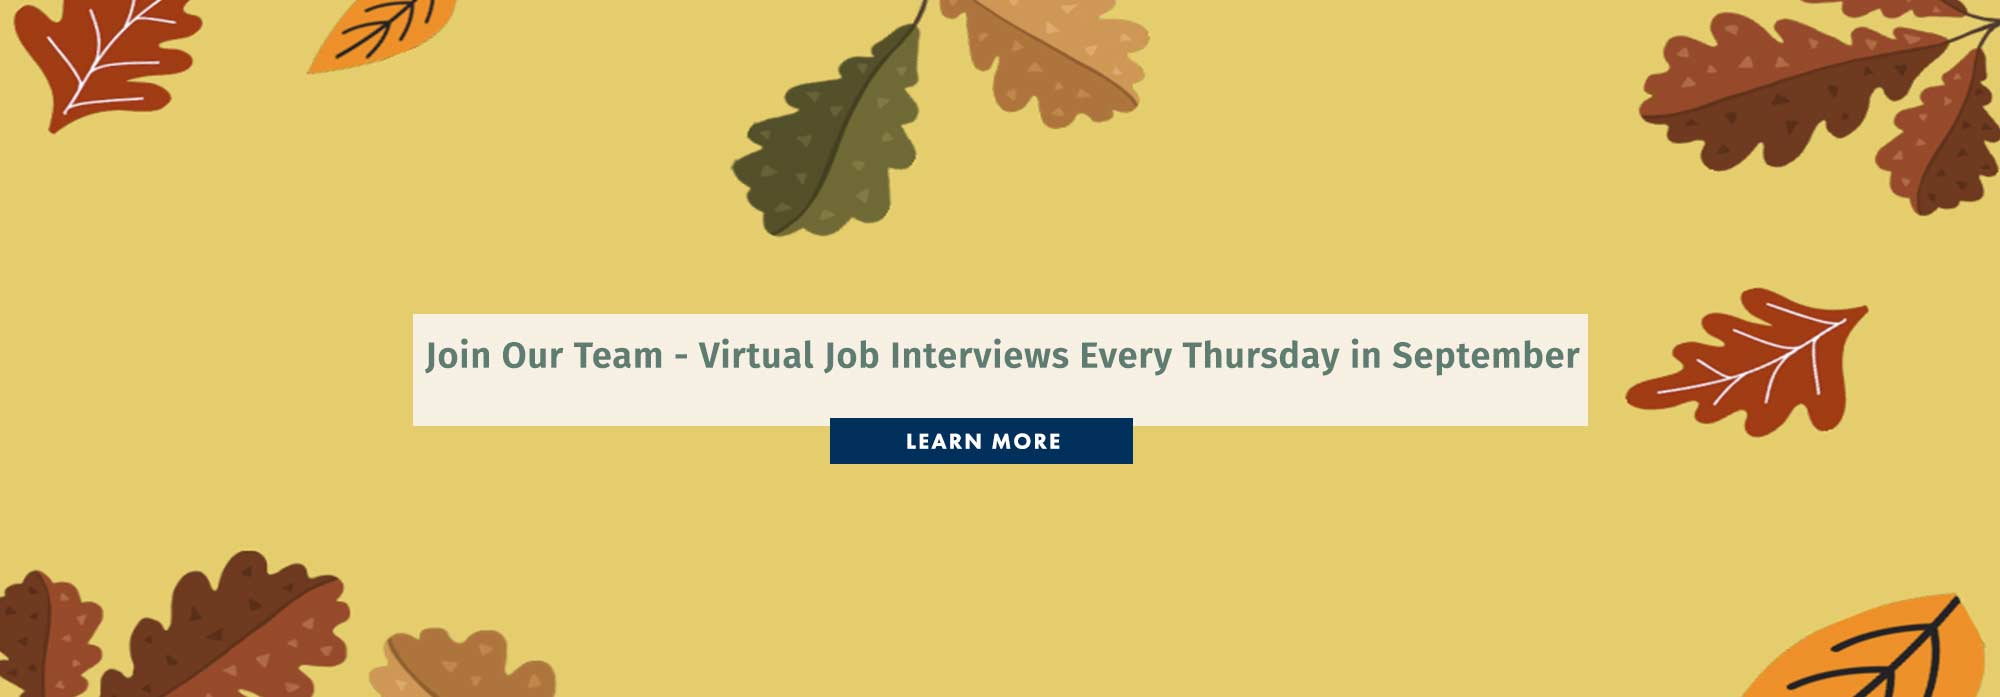 Join Our Team - Virtual Job Interview Every Thursday in September